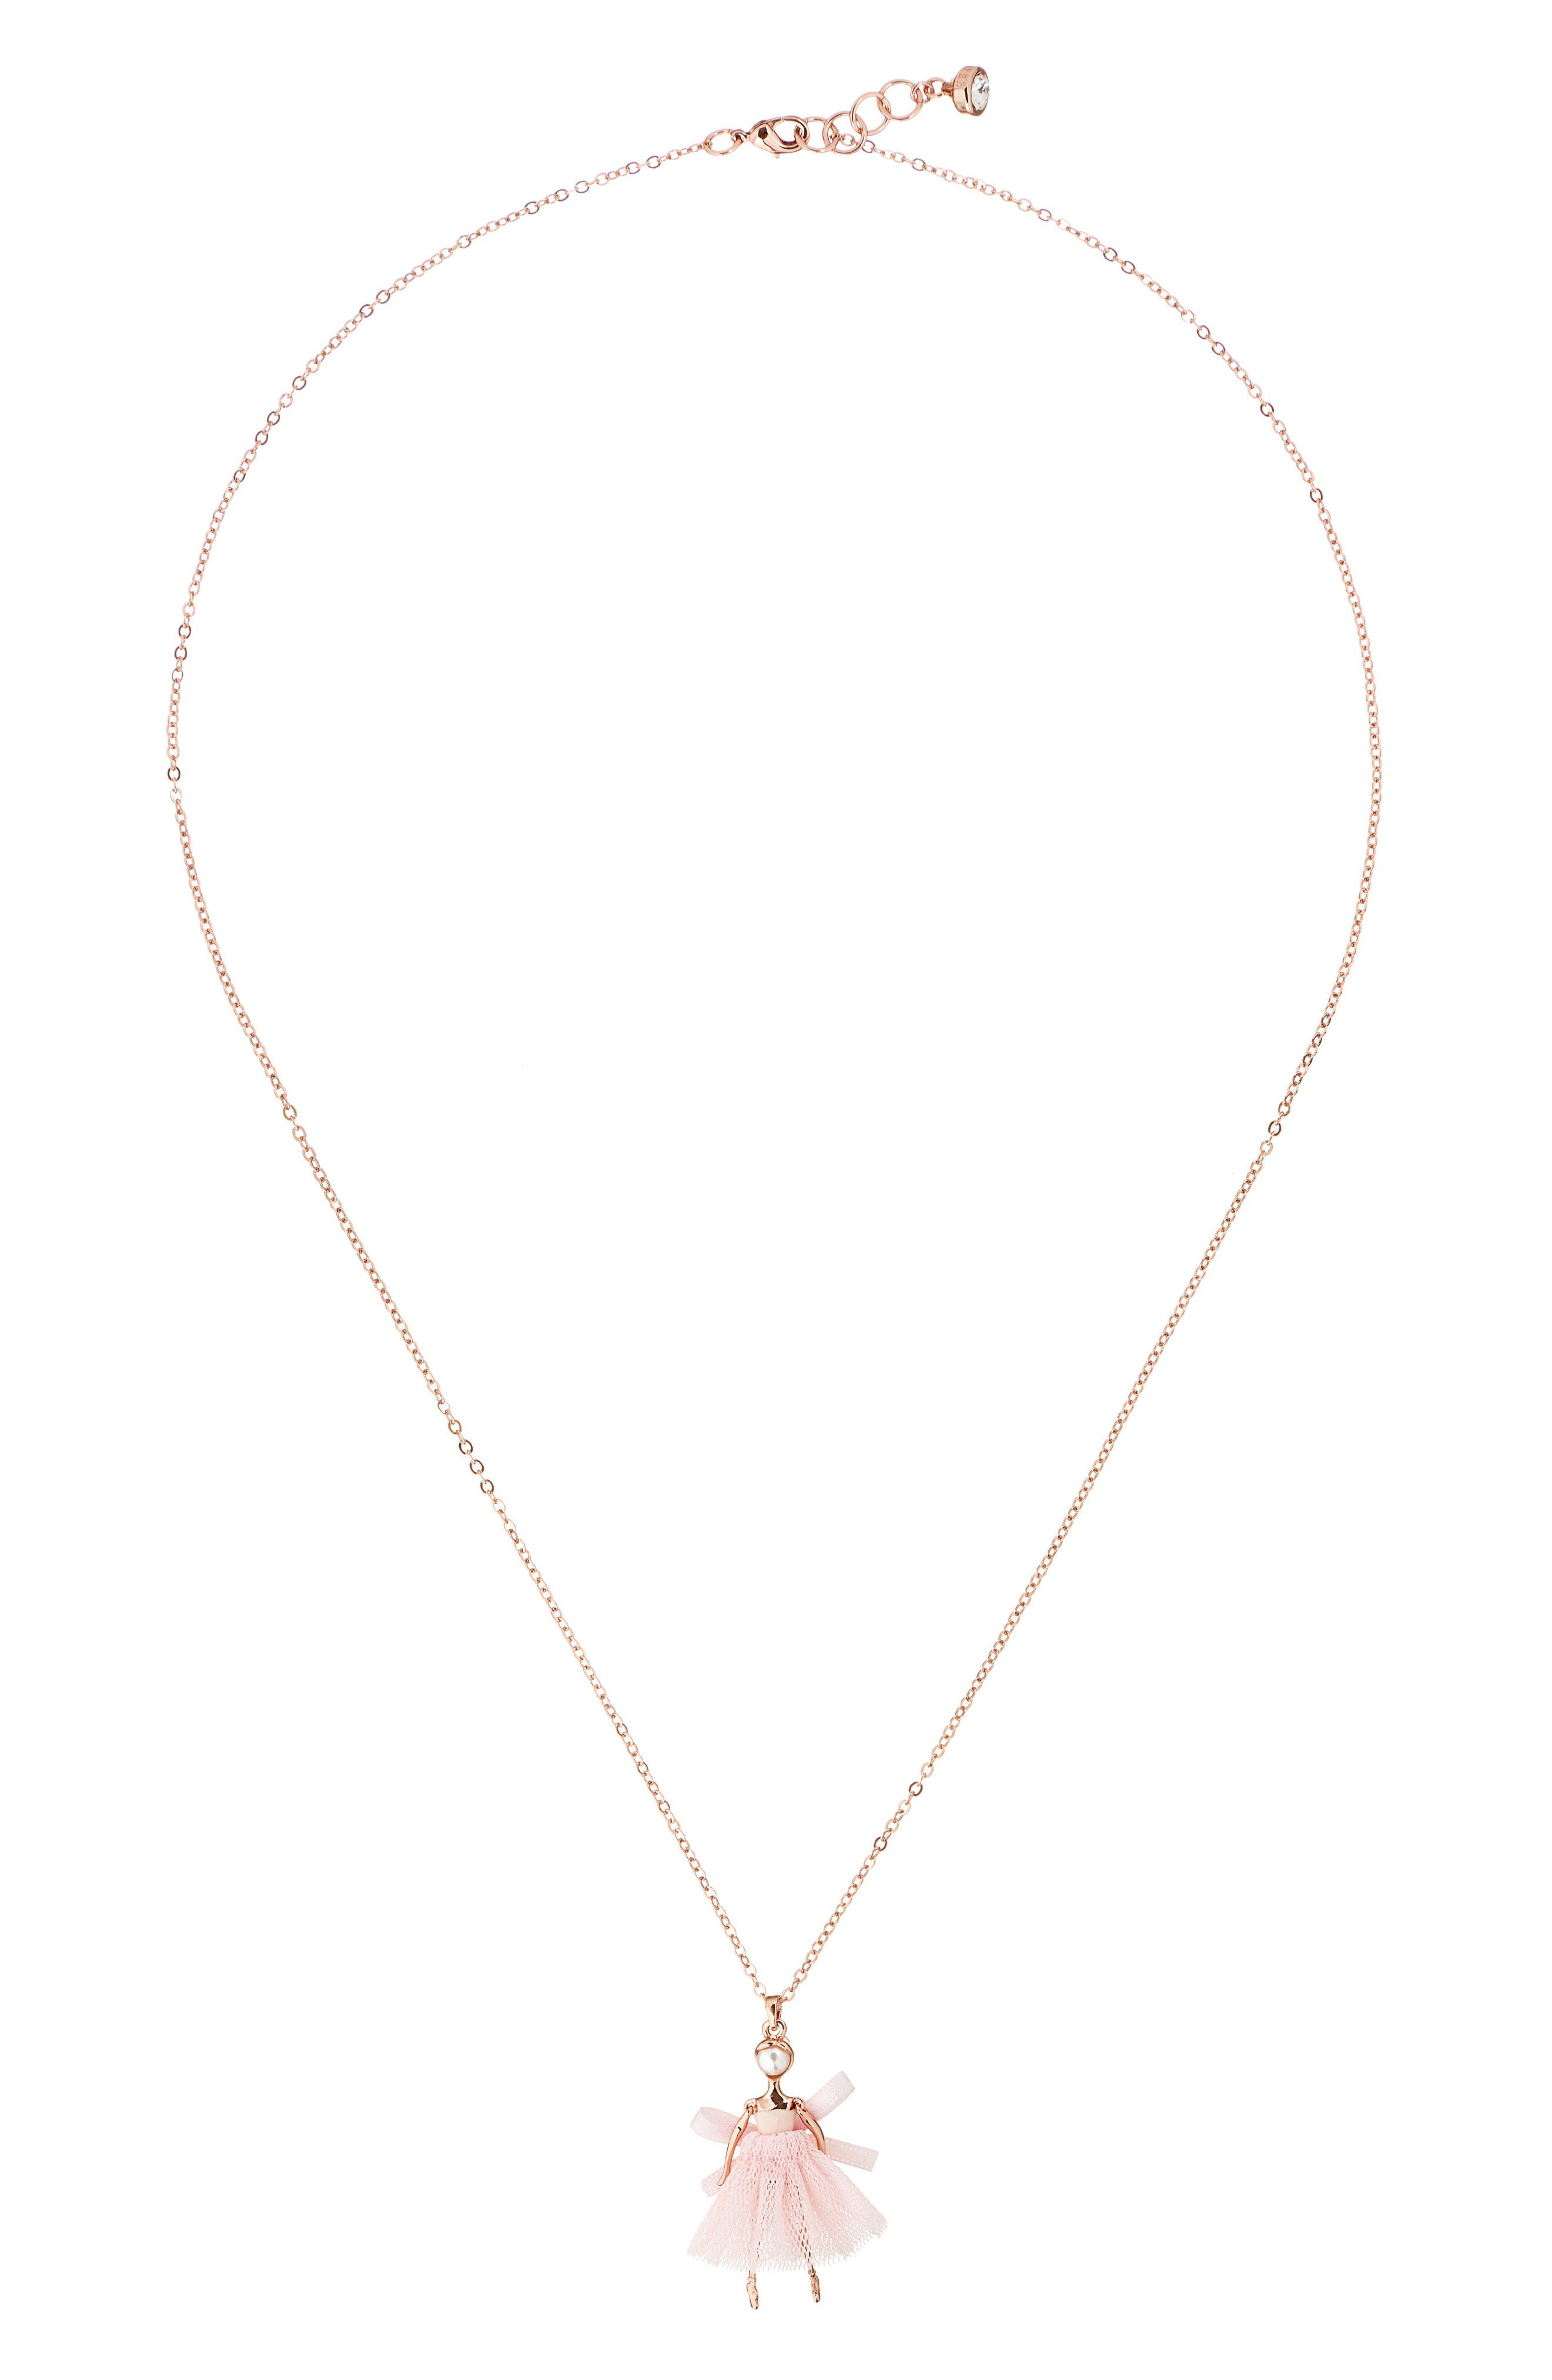 Main Image - Ted Baker London Carabel Ballerina Pendant Necklace